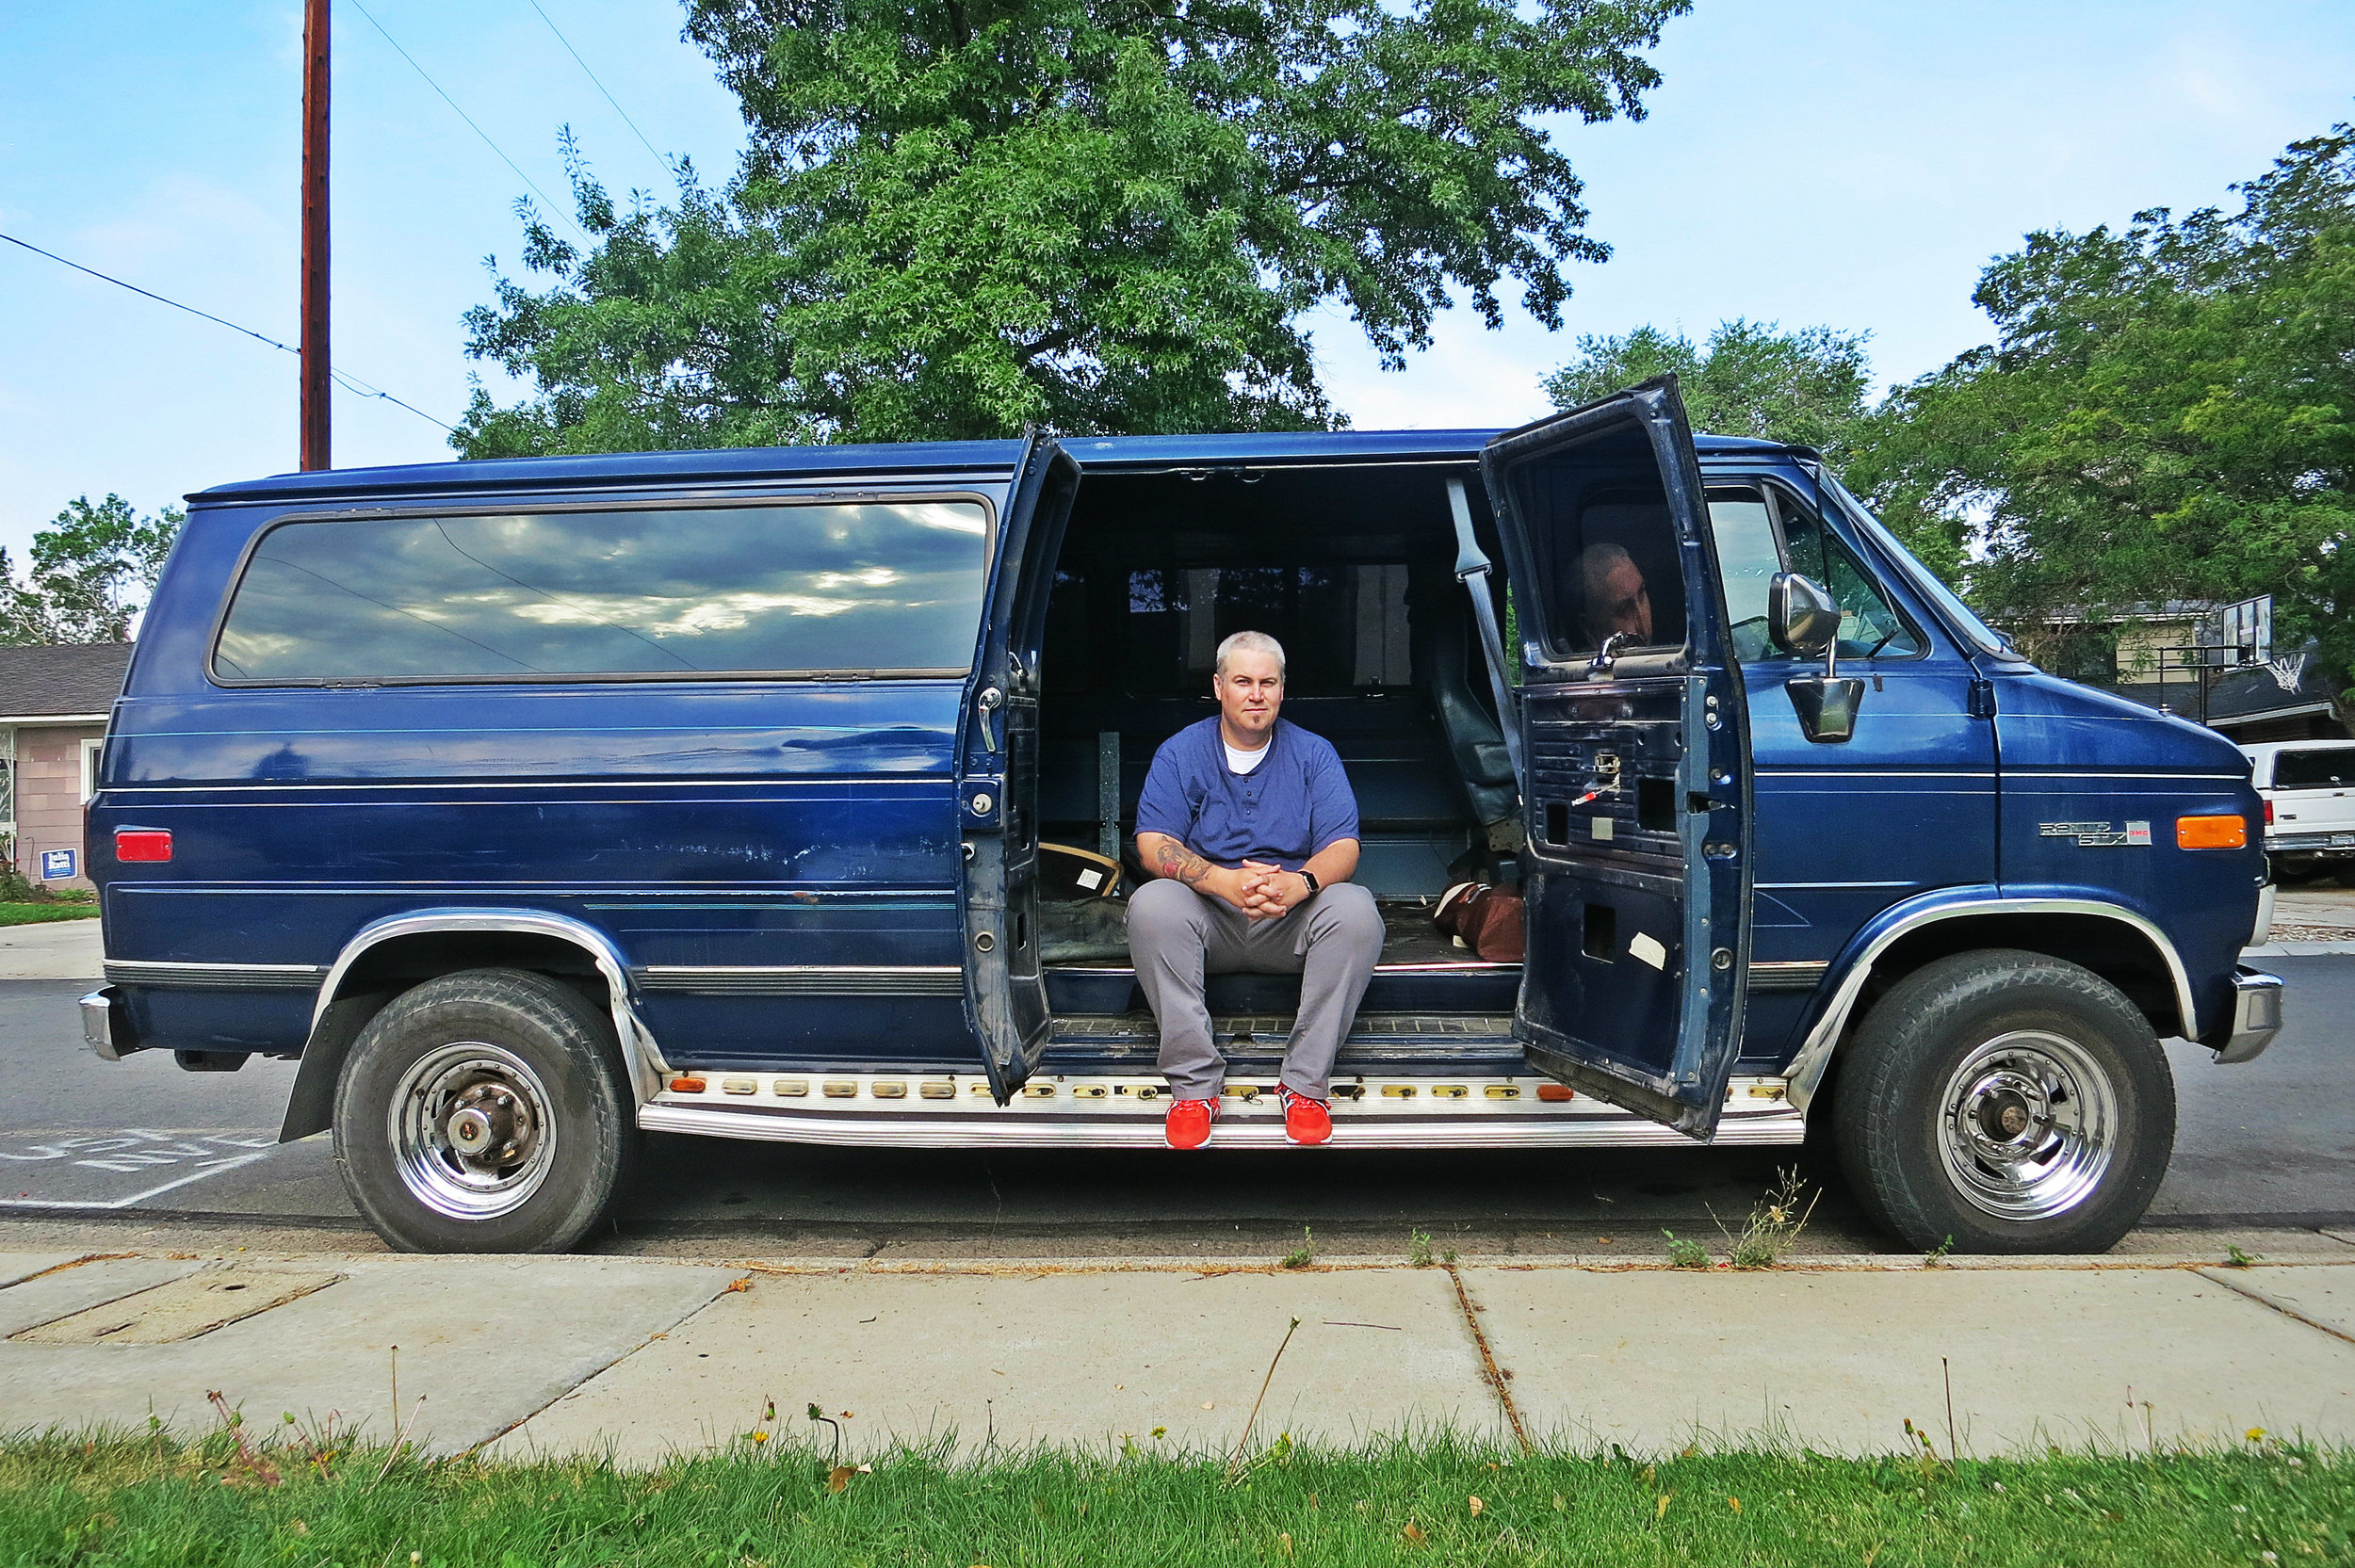 """An old van is my new best friend, my dwelling or someone else's,"" Seth explains, as he has embarked on renovating old vans for others to use while sleeping in one himself."